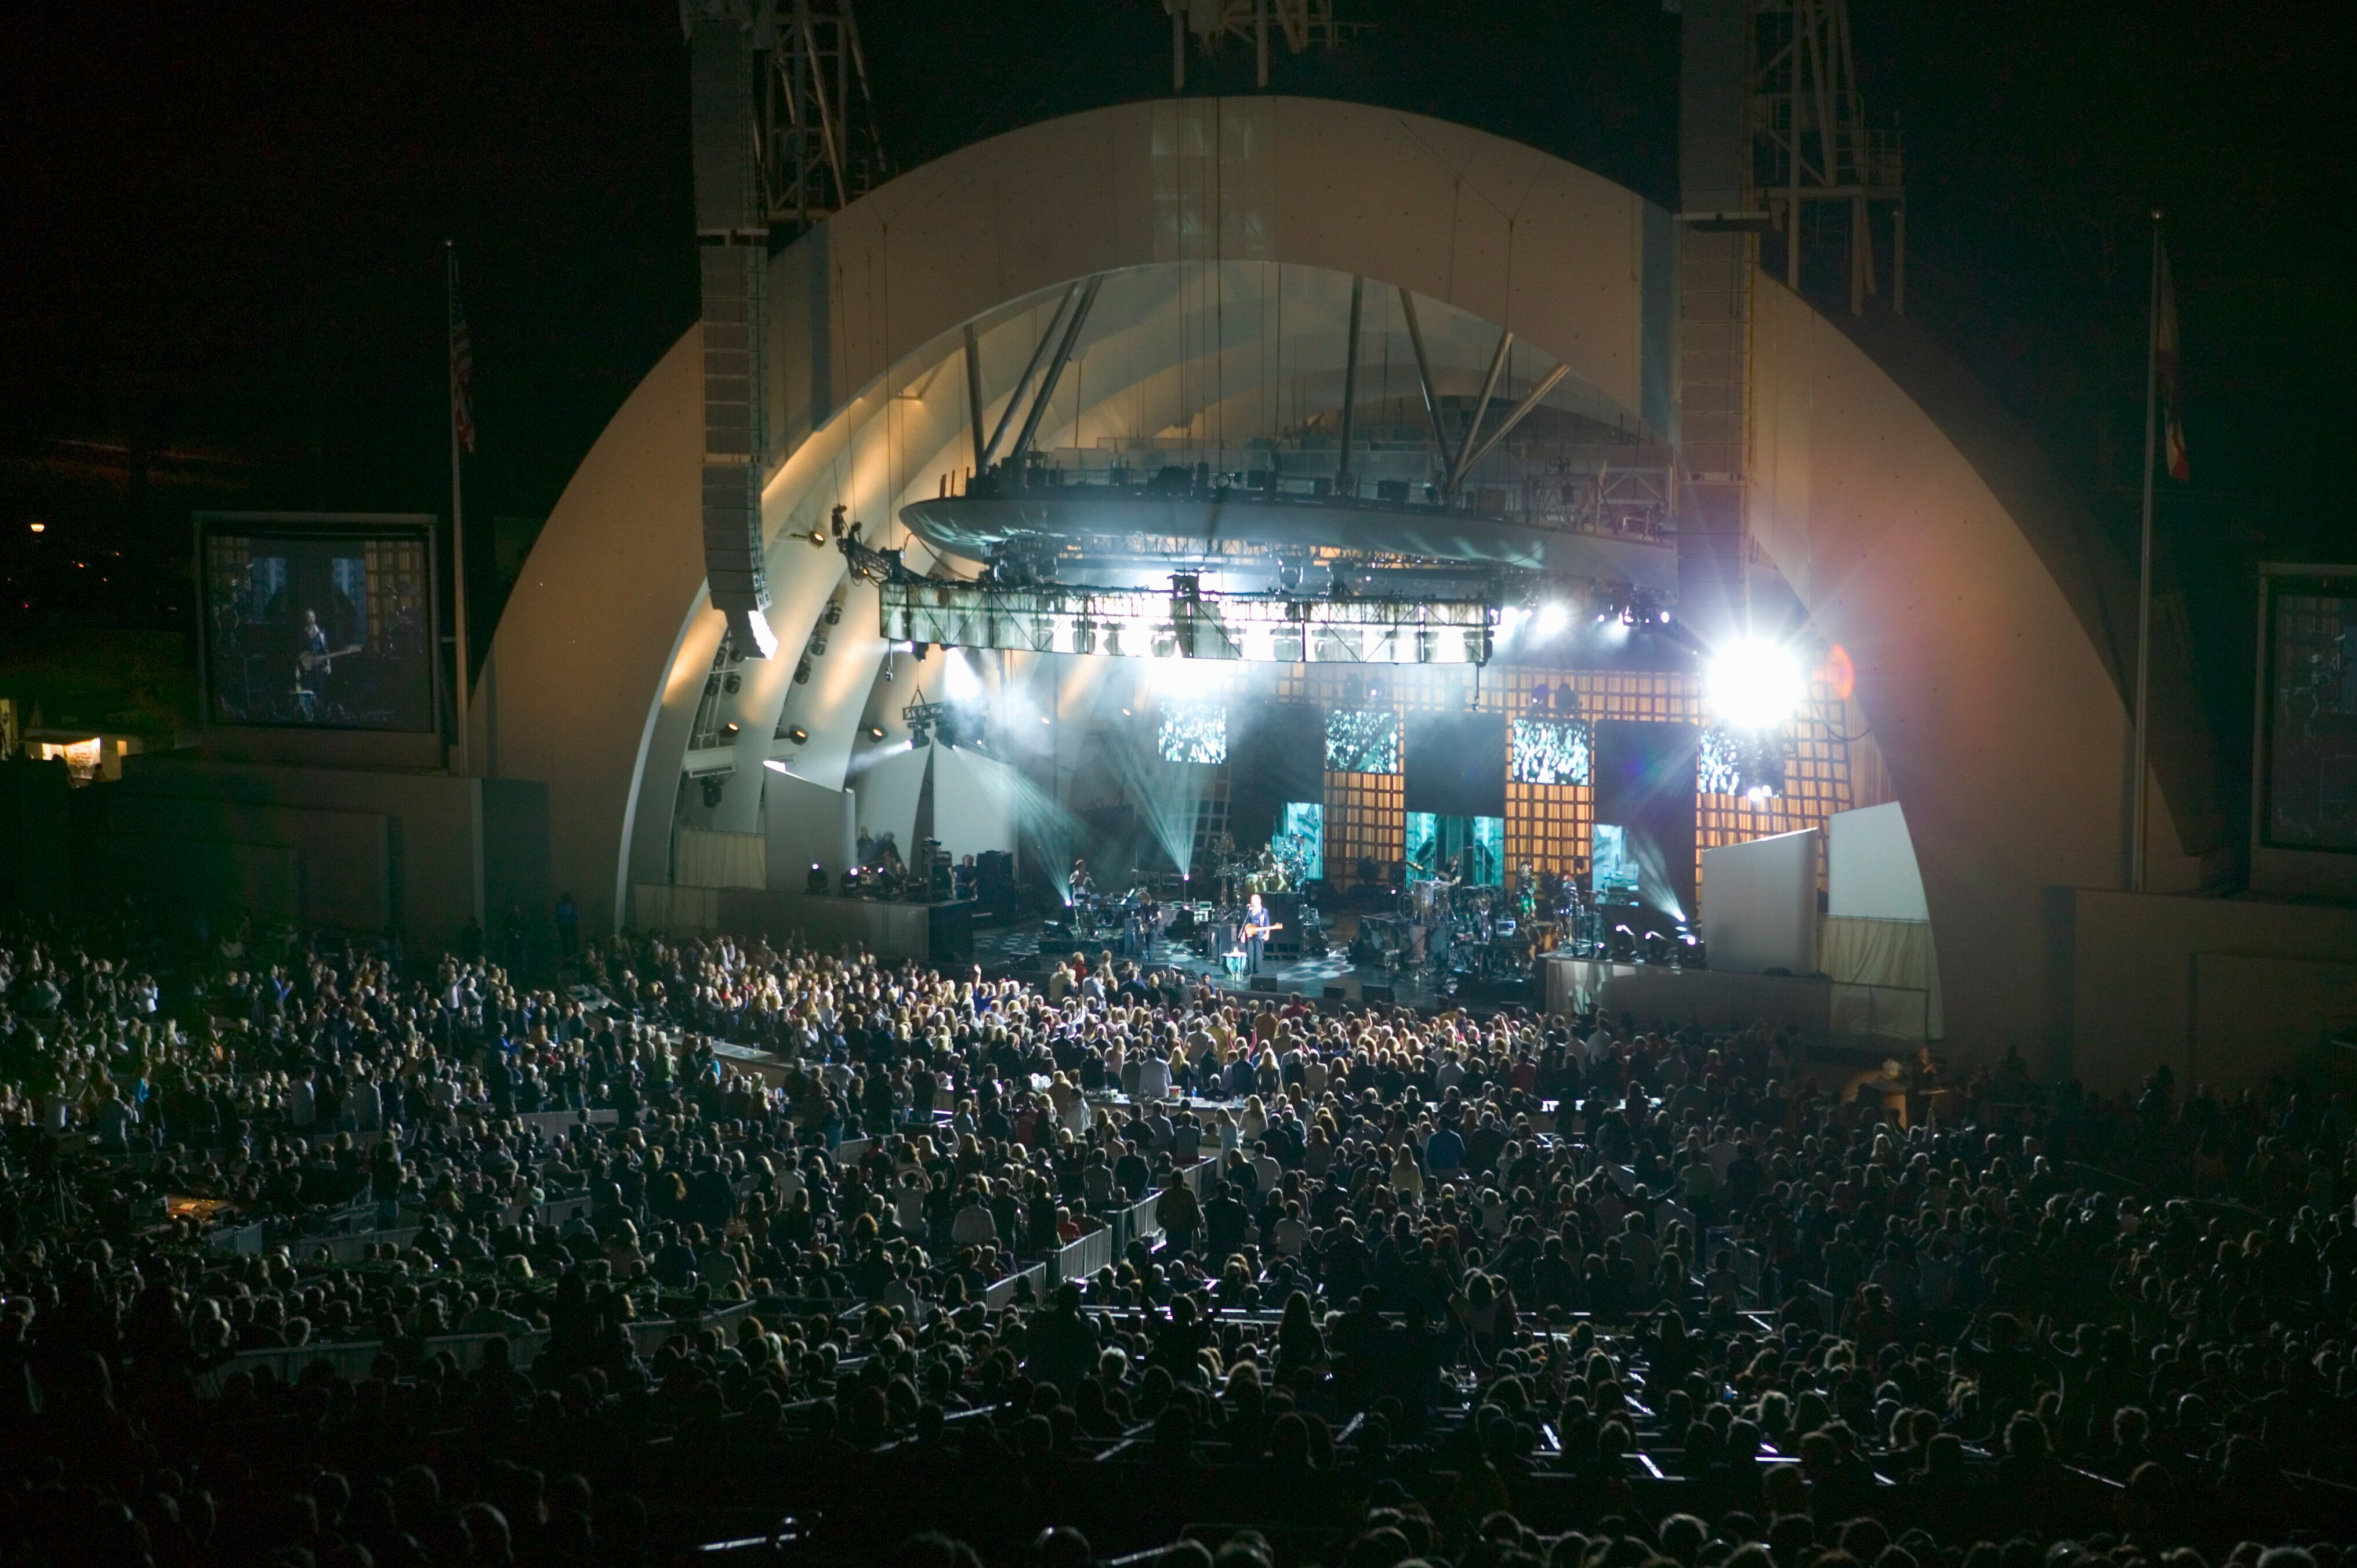 West's opera will be performed at the Hollywood Bowl in Los Angeles on Nov. 24.